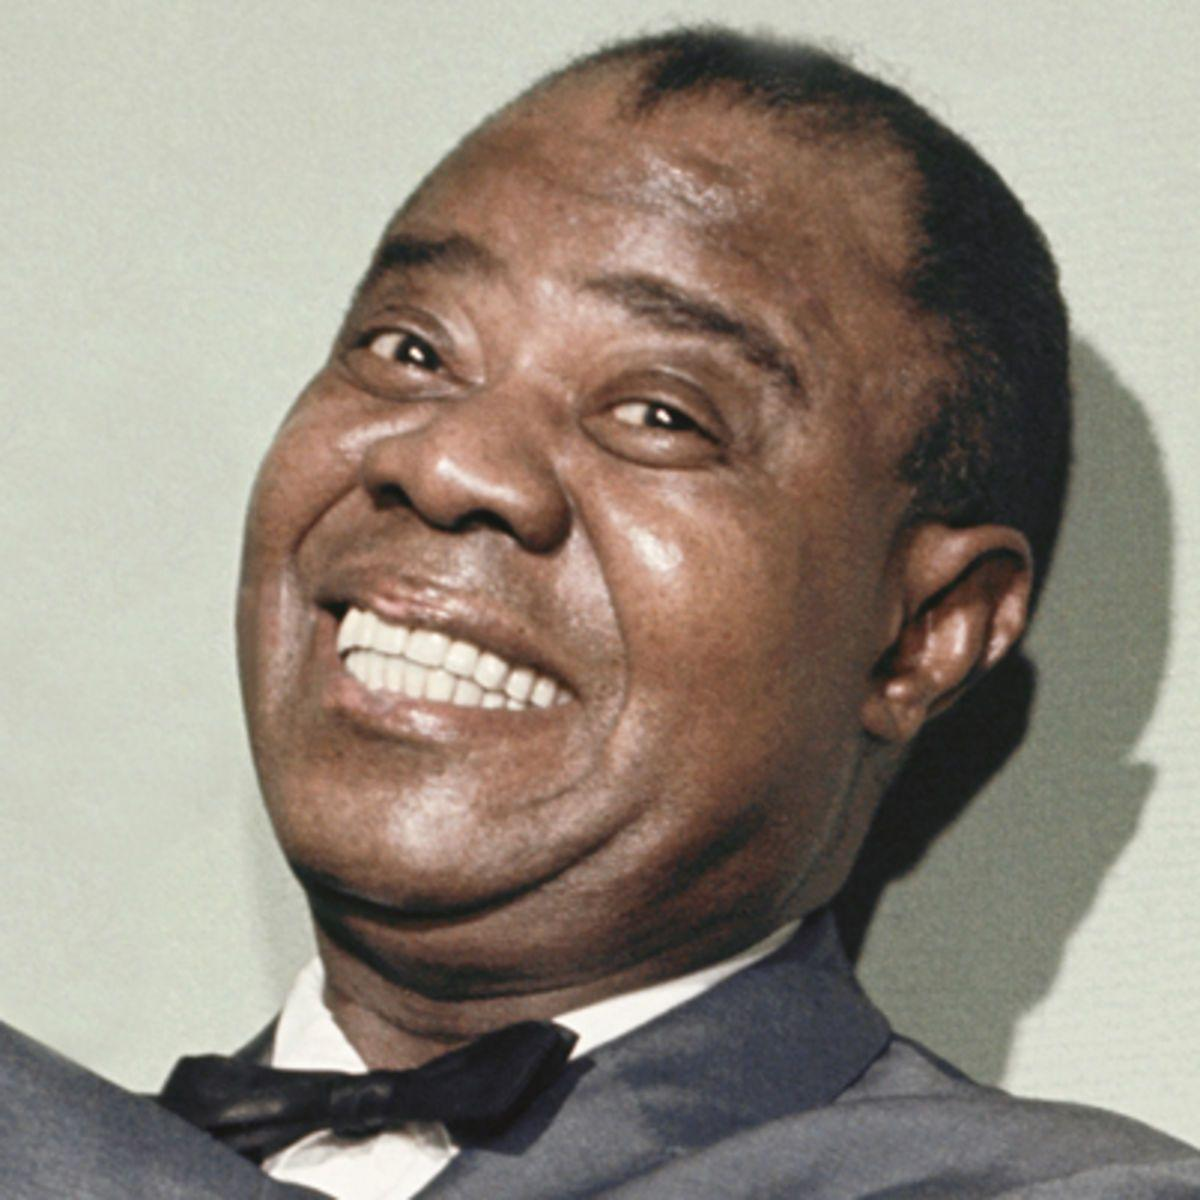 1200x1200px Louis Armstrong 136.19 KB